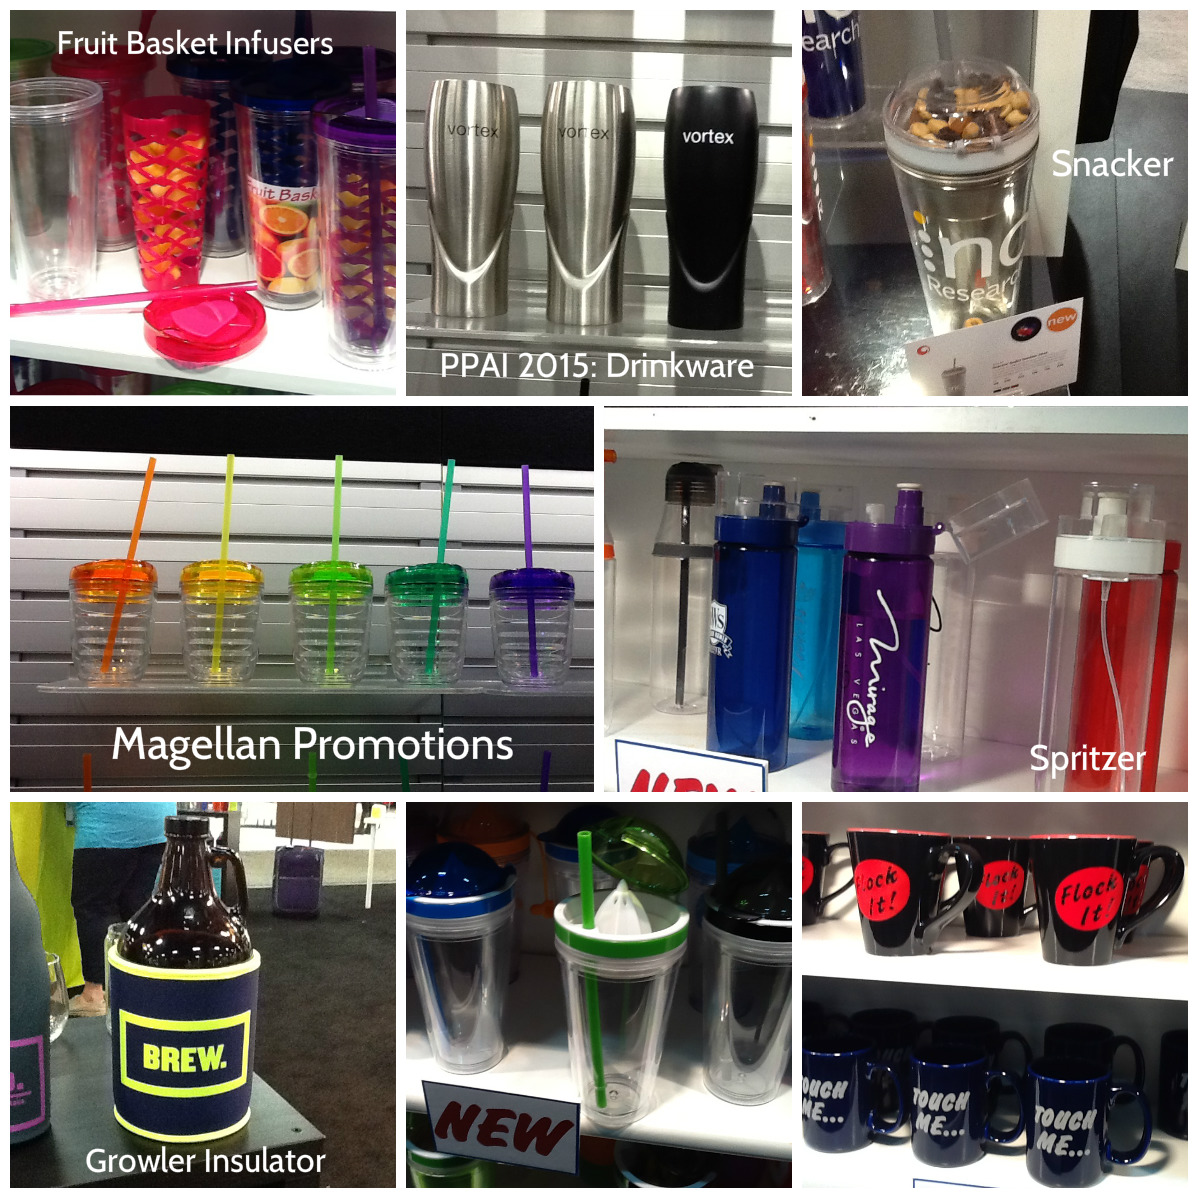 2015 Trends in Drinkware Promotional Items